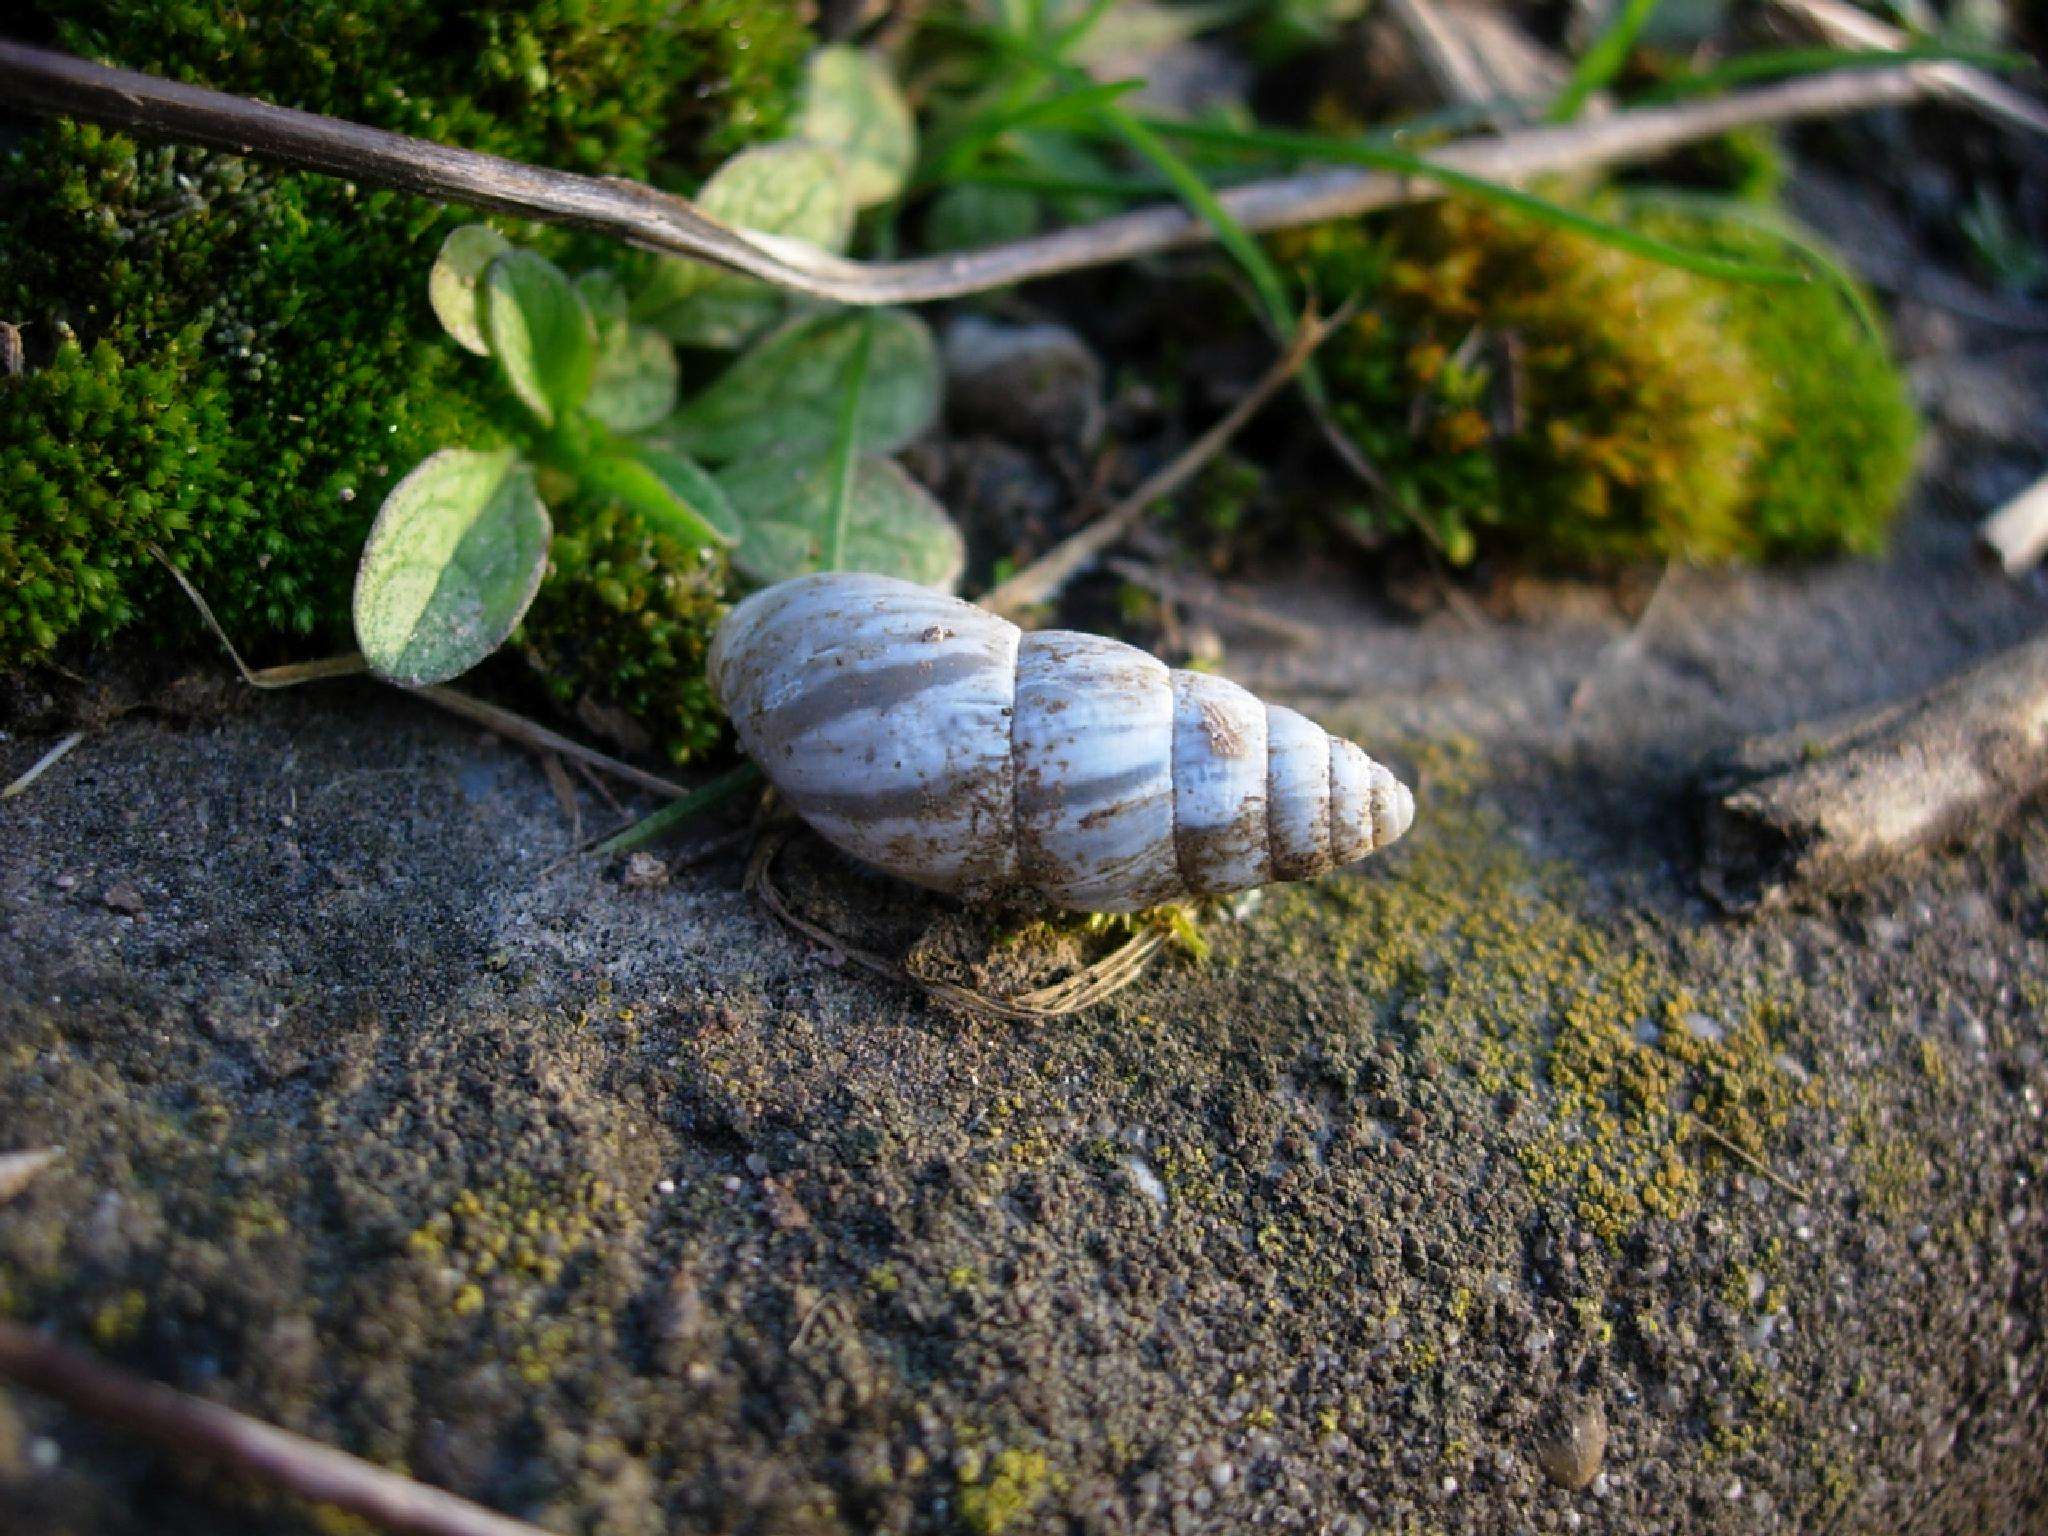 Little Snail in the Cold by Katy Haecker